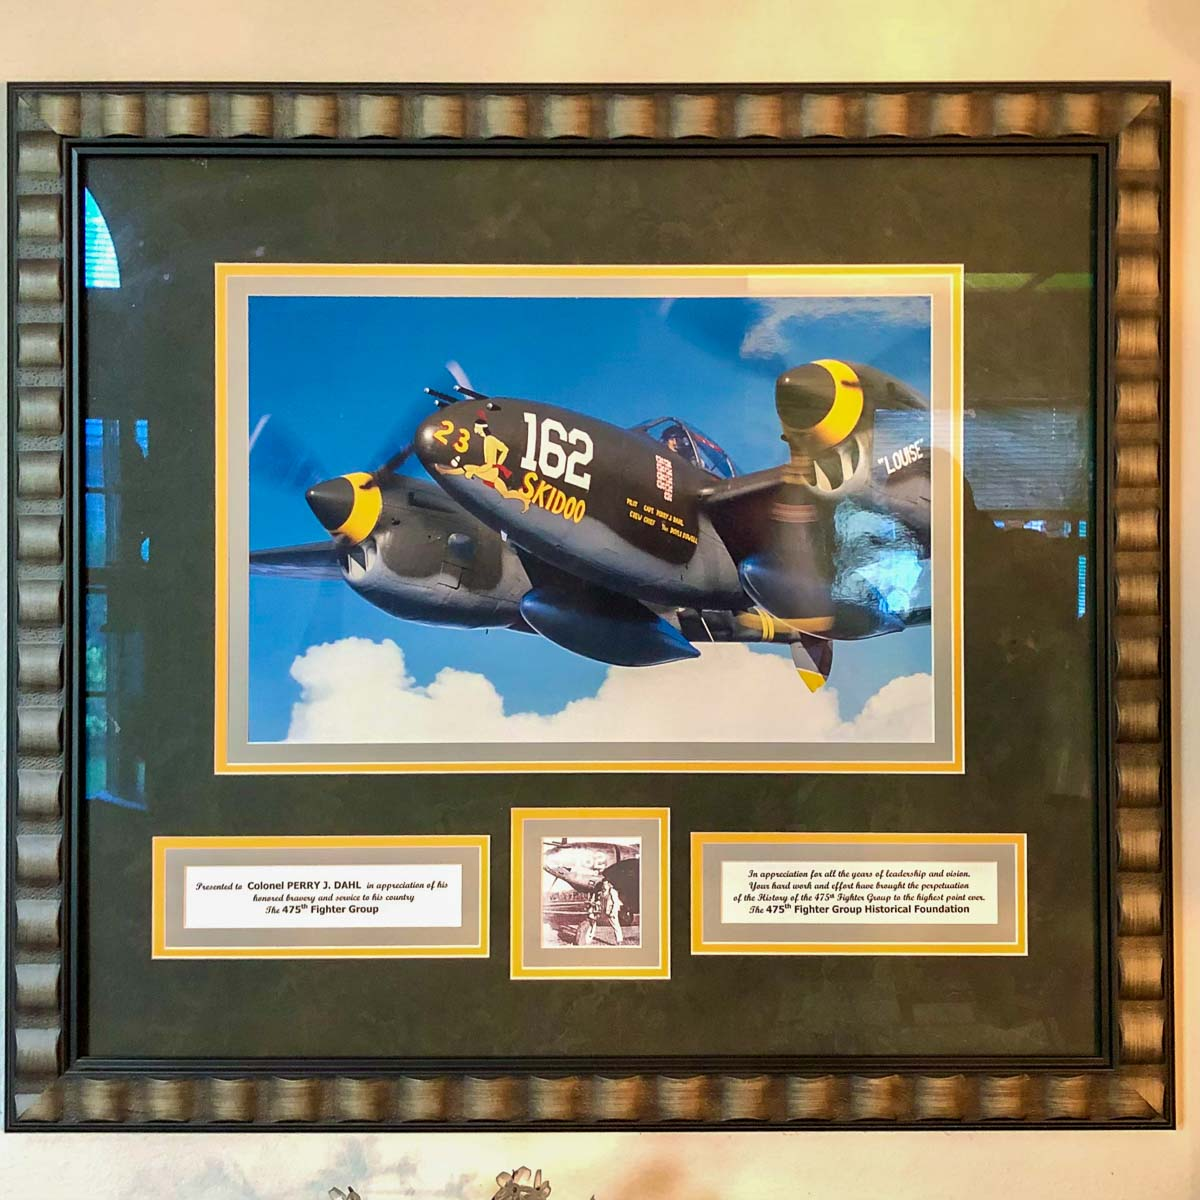 Perry Dahl 475th fighter group